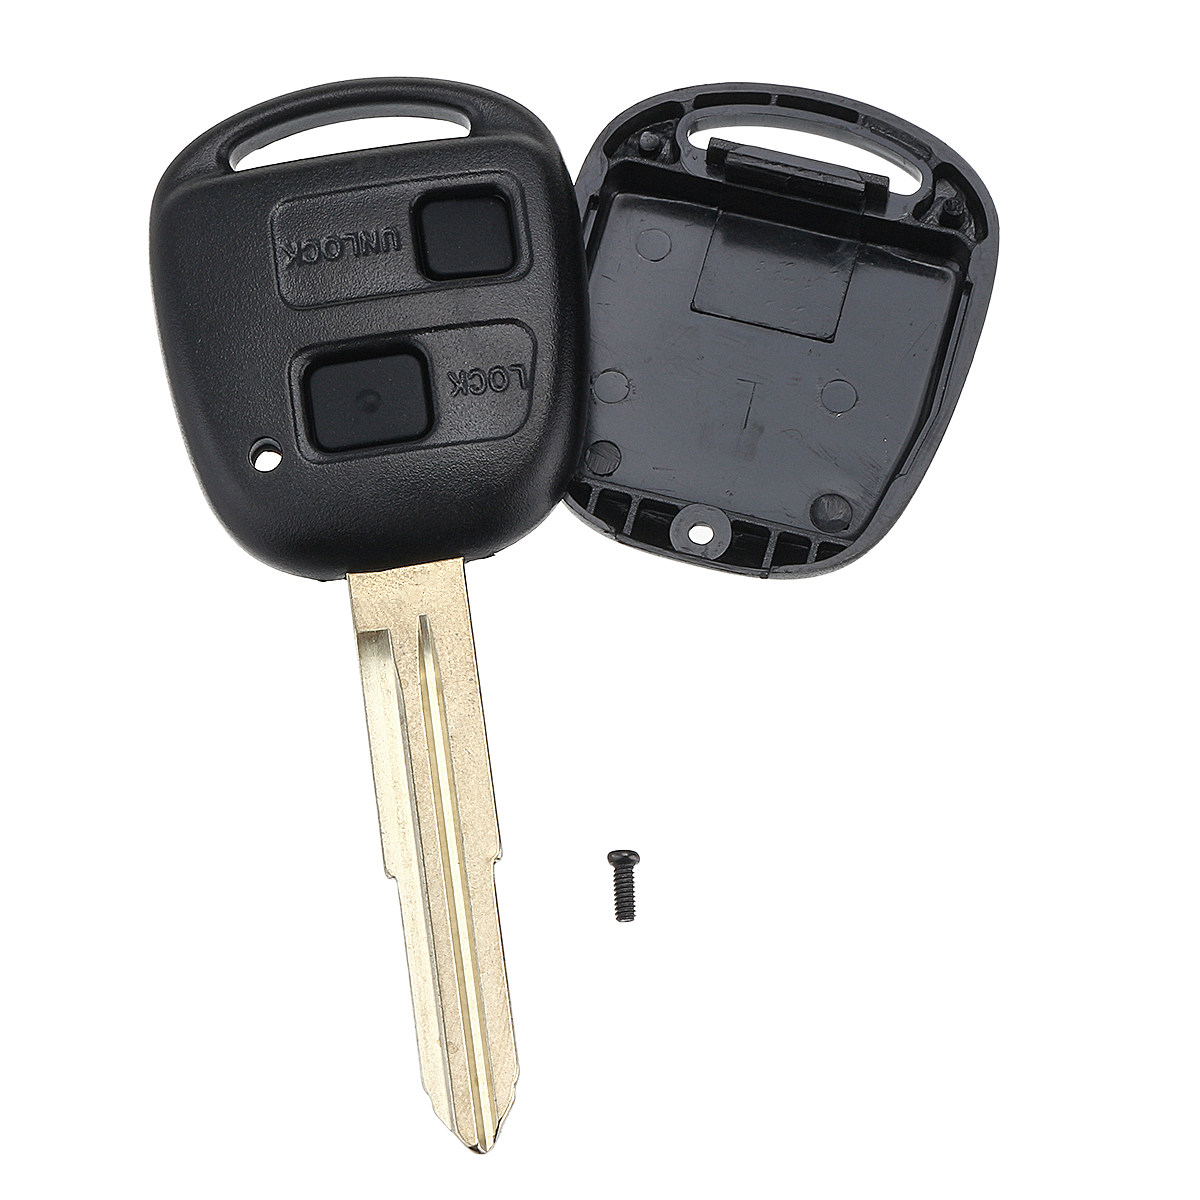 2 Button Remote Key Fob With Switch Battery Pad For Toyota Yaris Avensis Corolla RAV4